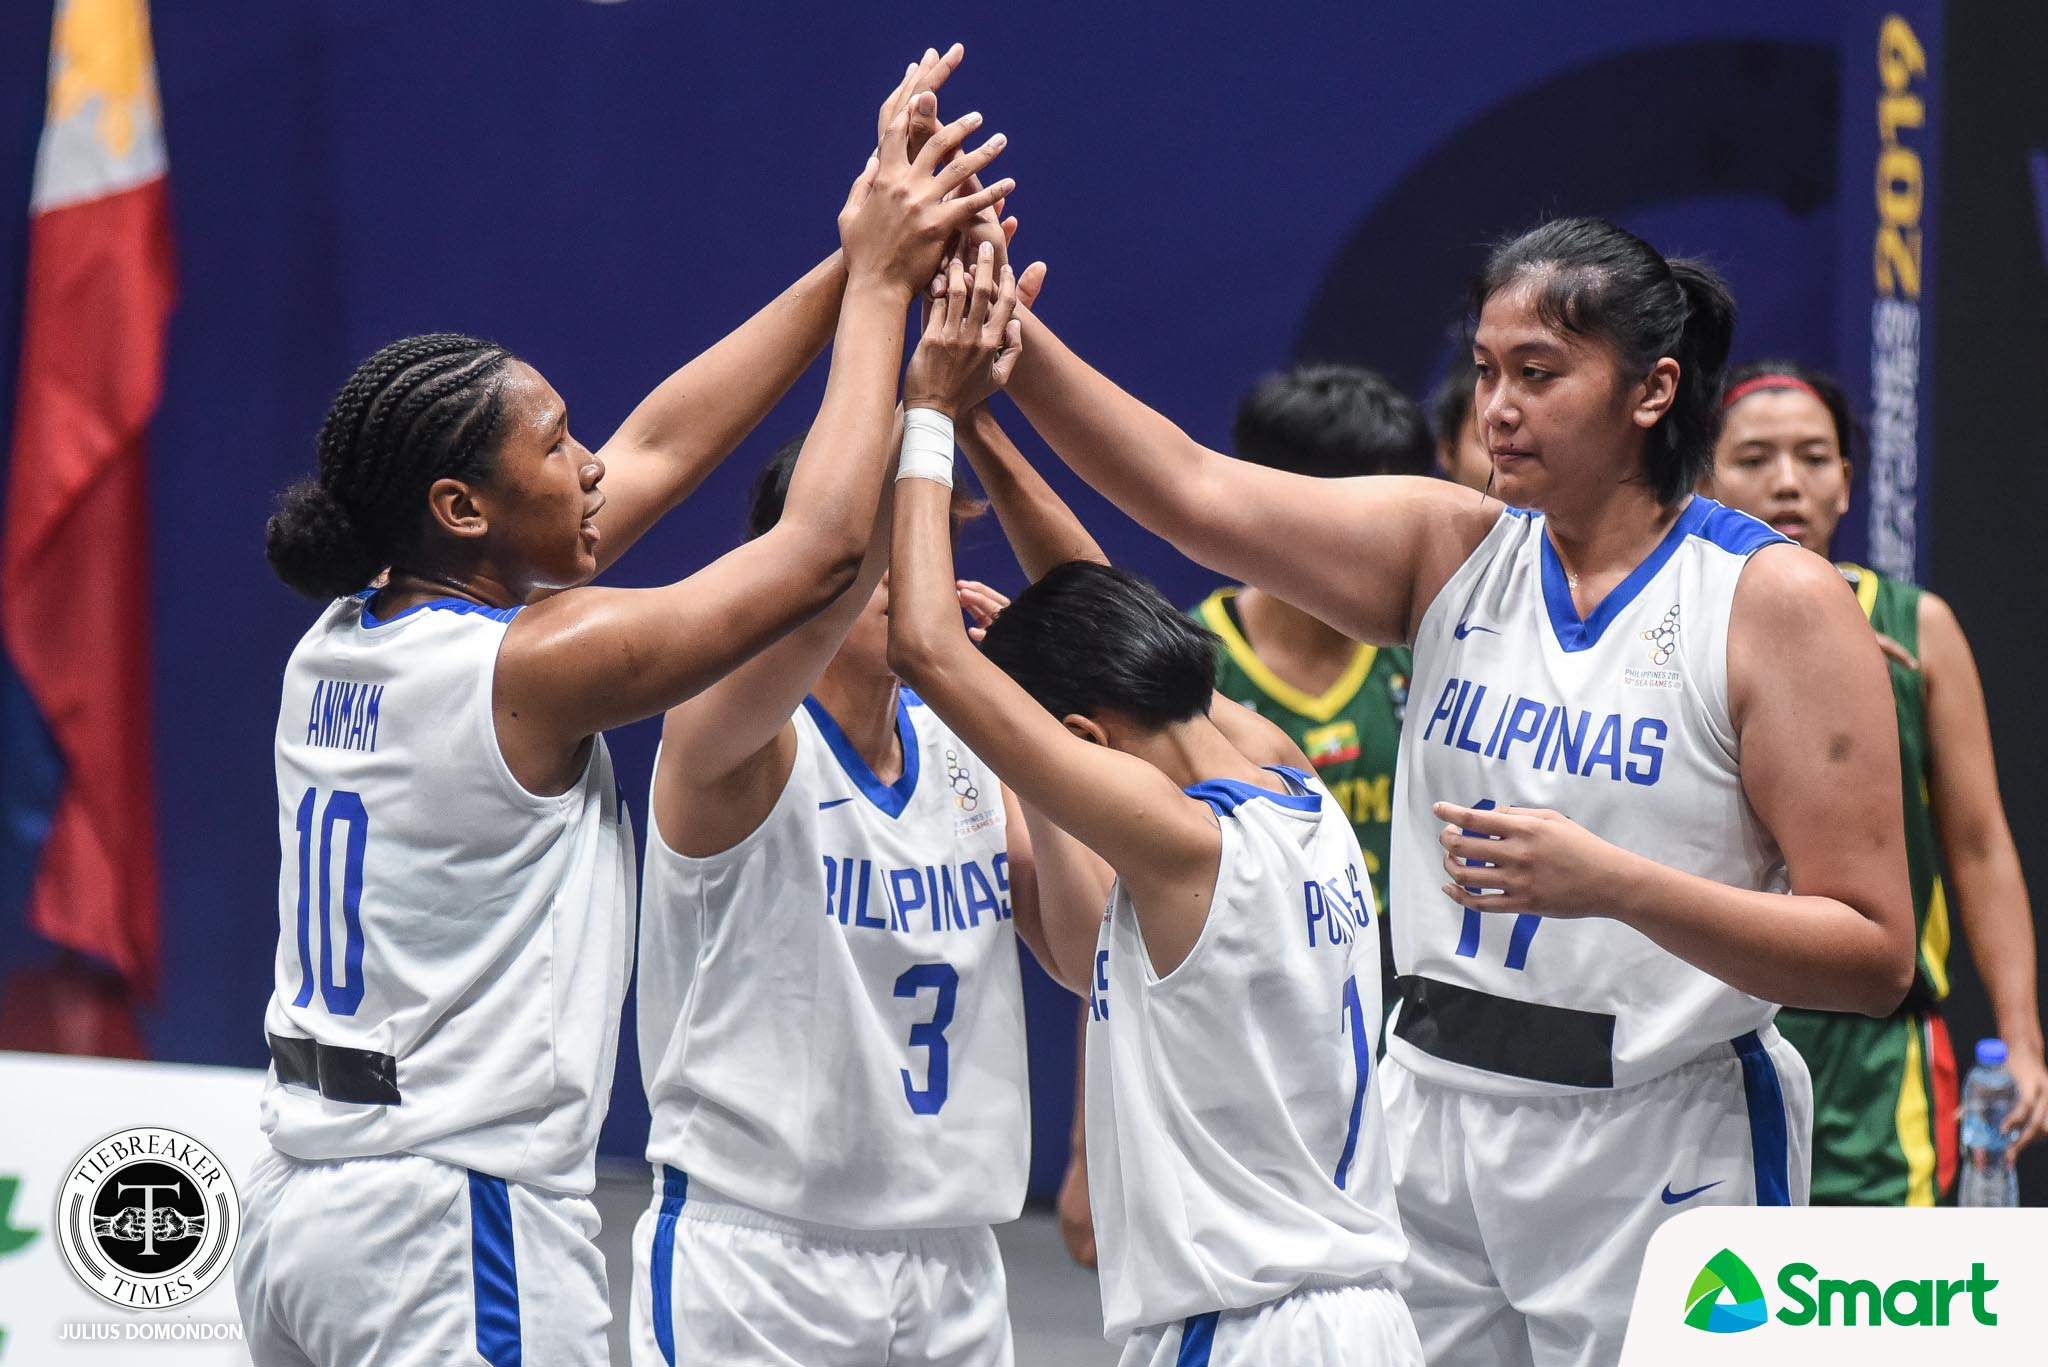 Tiebreaker Times Gilas Women's 3x3 go to 3-0, inch closer to SEA Games semis 2019 SEA Games 3x3 Basketball Gilas Pilipinas News  Janine Pontejos Jack Animam Gilas Pilipinas Women Clare Castro Afril Bernardino 2019 SEA Games - 3x3 Basketball 2019 SEA Games